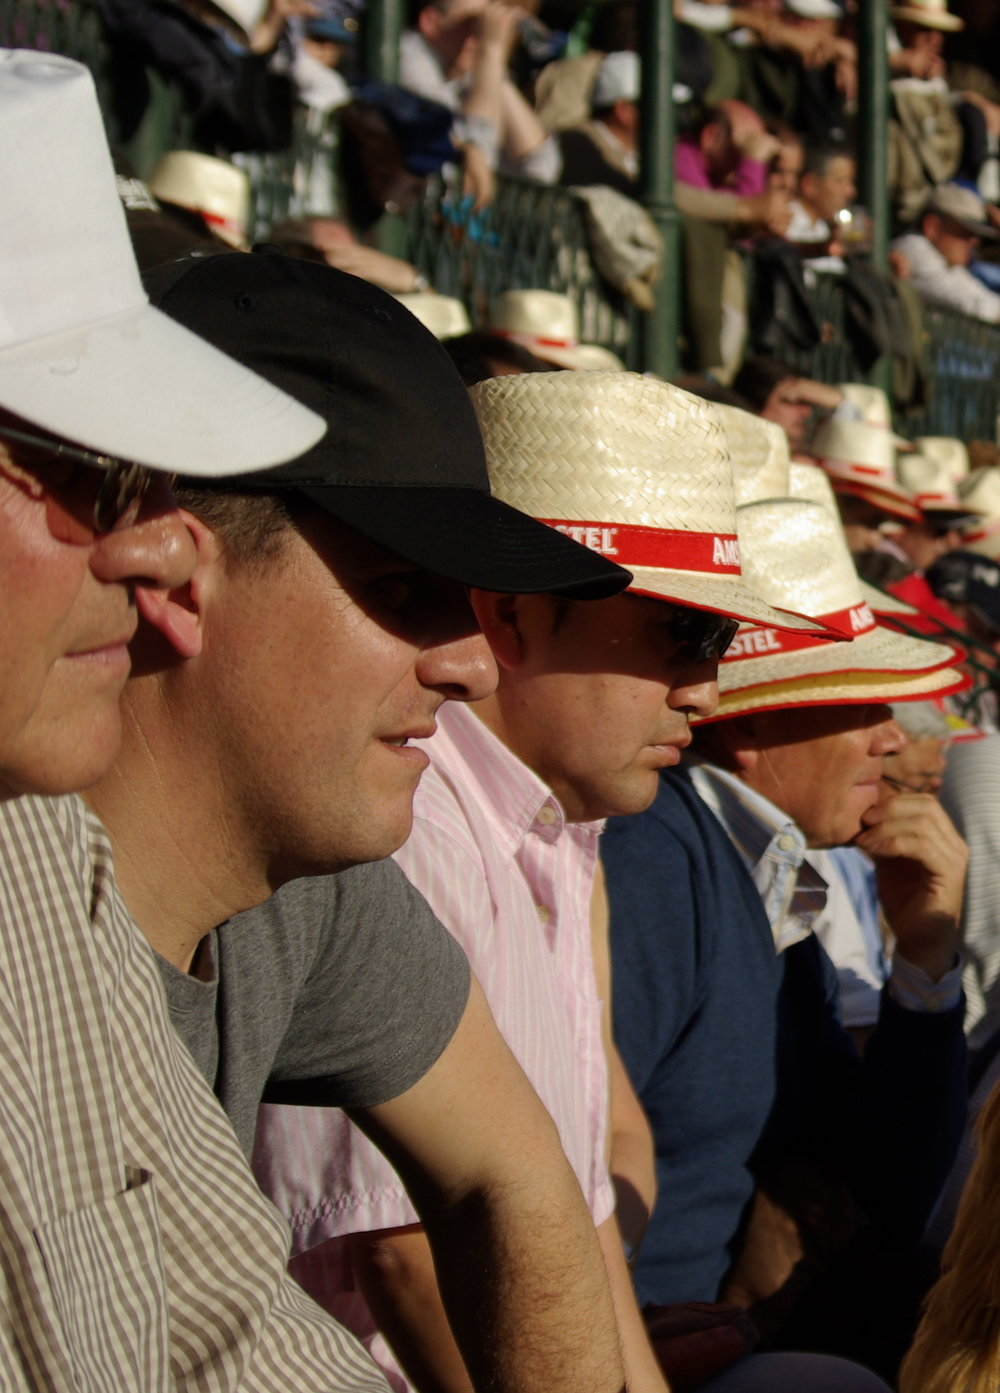 bullfight spectators.jpeg